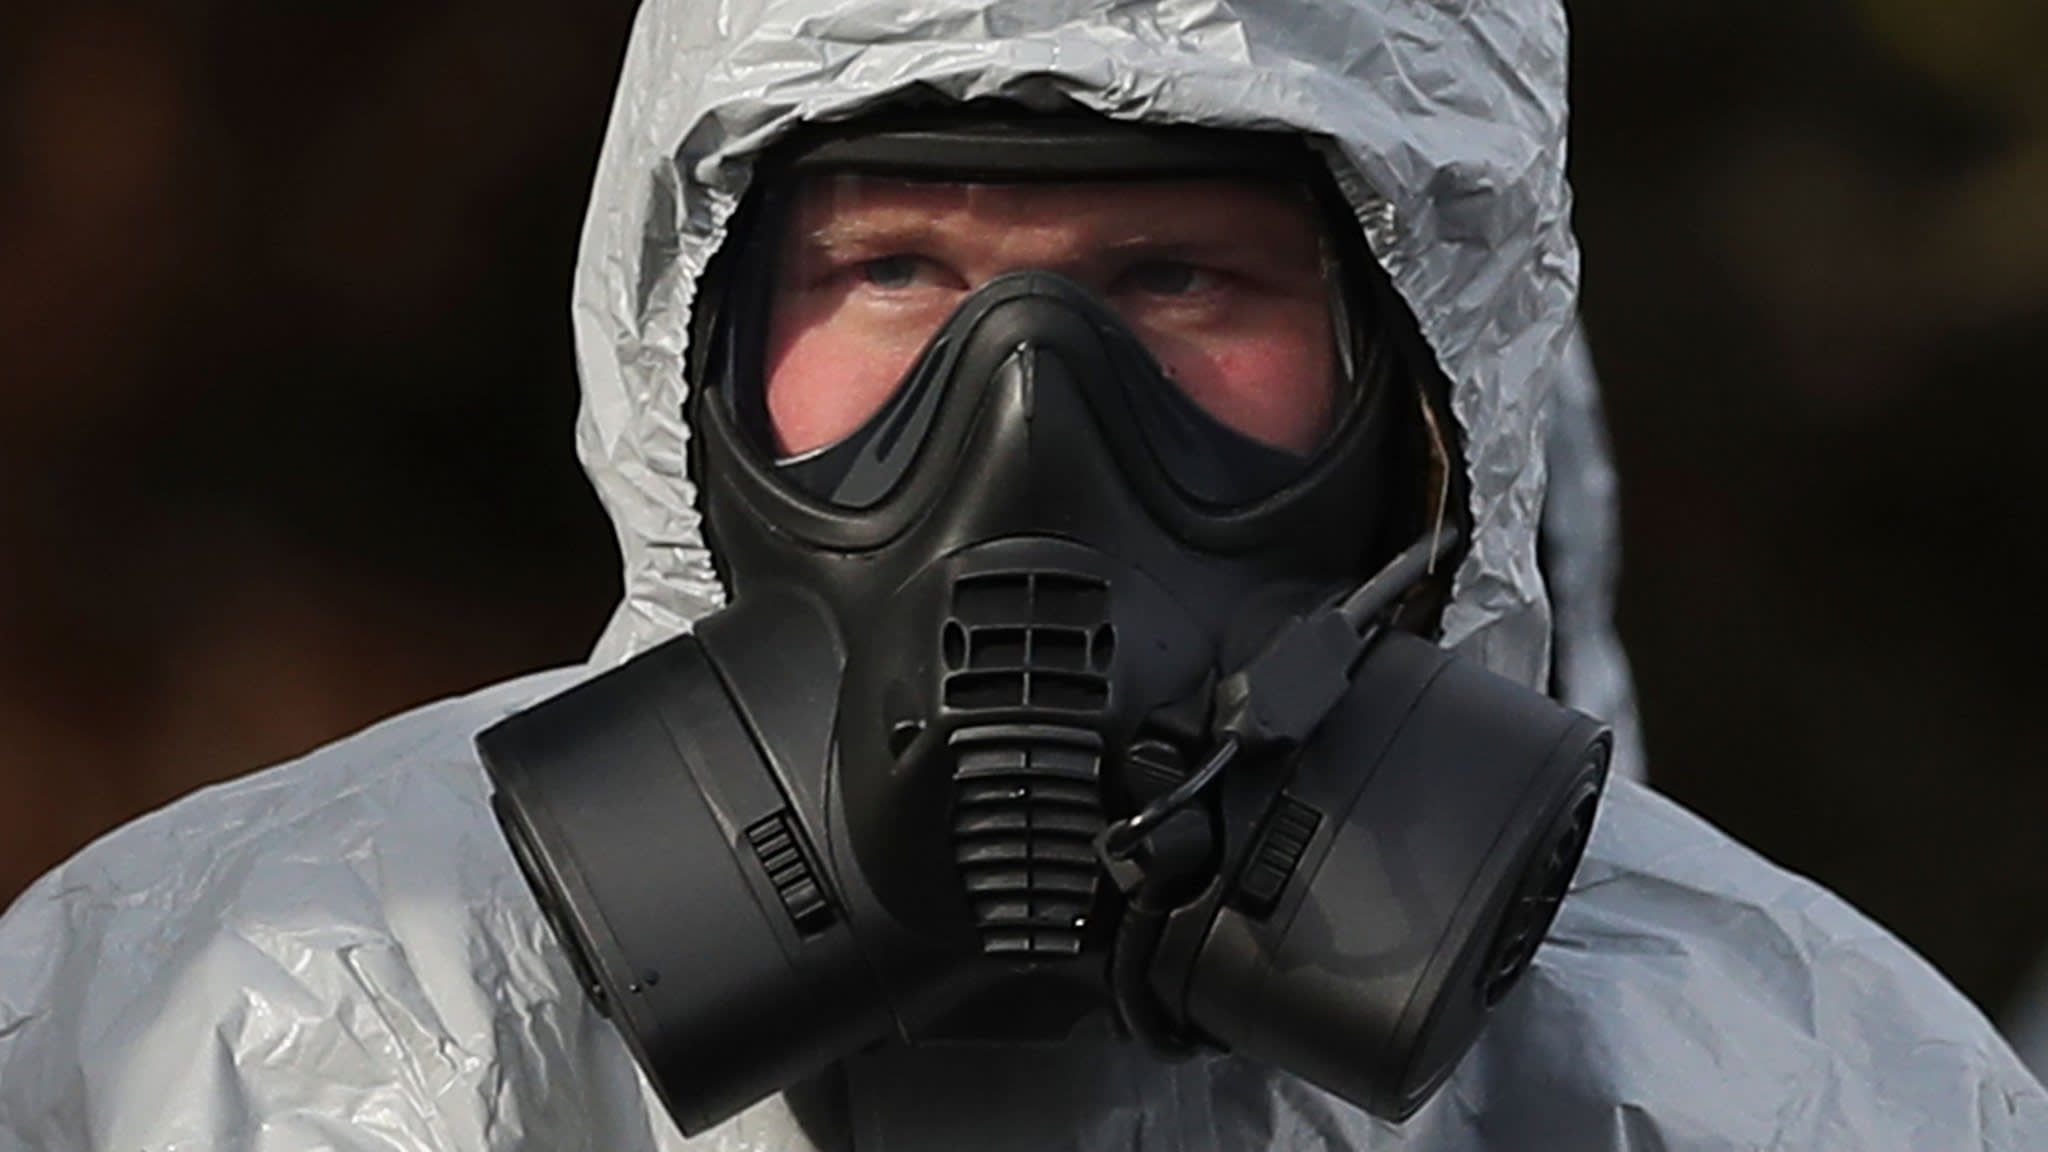 UK stance on Skripal attack supported by chemical weapons agency